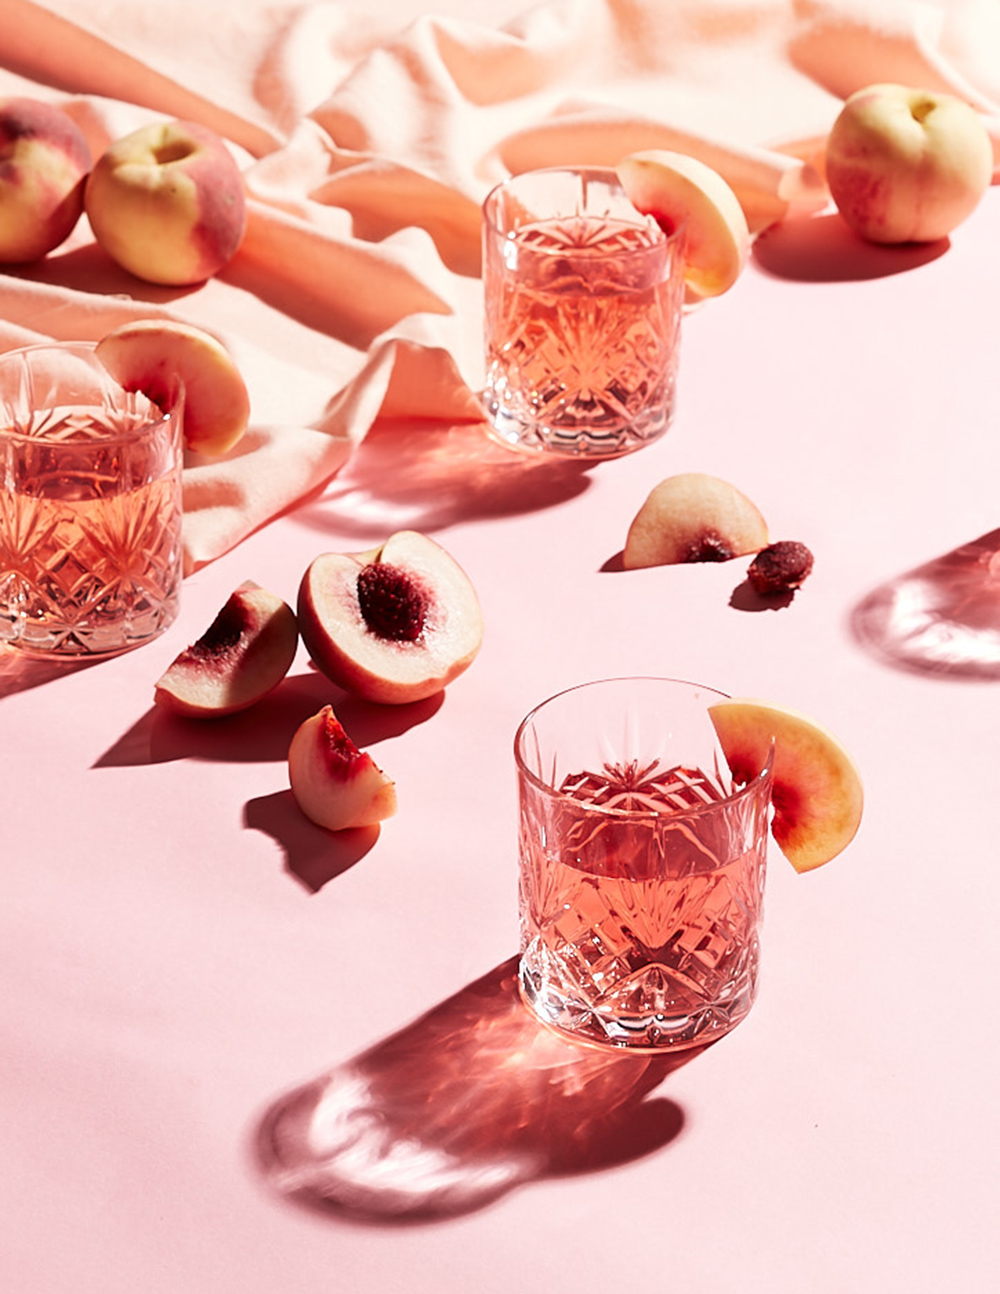 Peah-cocktail-spring-drink-stylist-prop-food-still-life-styling-set-designer-lifestyle-creative-art-director-lauren-becker.jpg